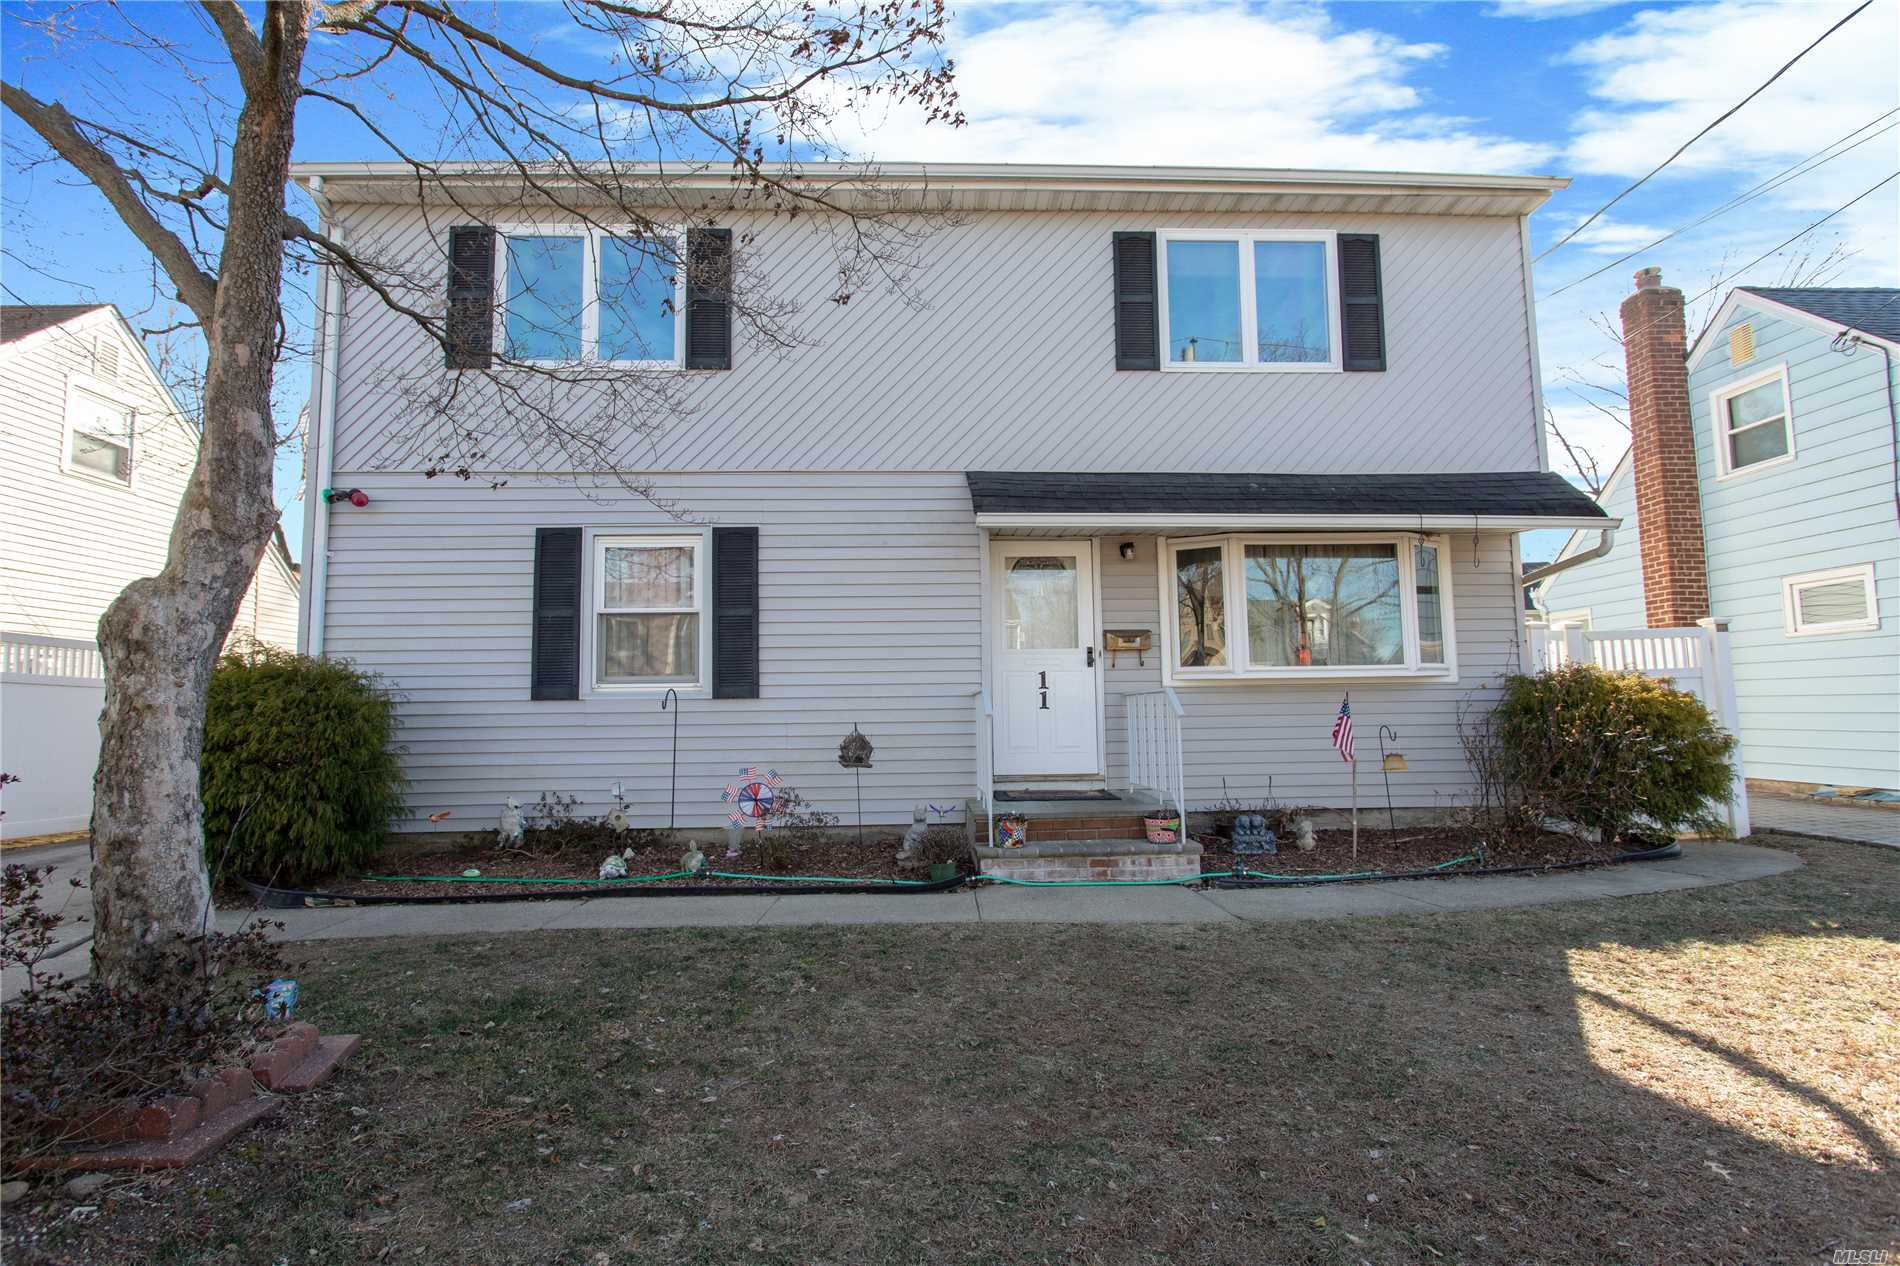 Beautiful Updated Colonial, Possible Parent/Child With Proper Permits. Featuring 4 Brs, 2 Full Bths, Lr, Formal Dr And Family Rm, Large Updated Basement With A Private Entrance.